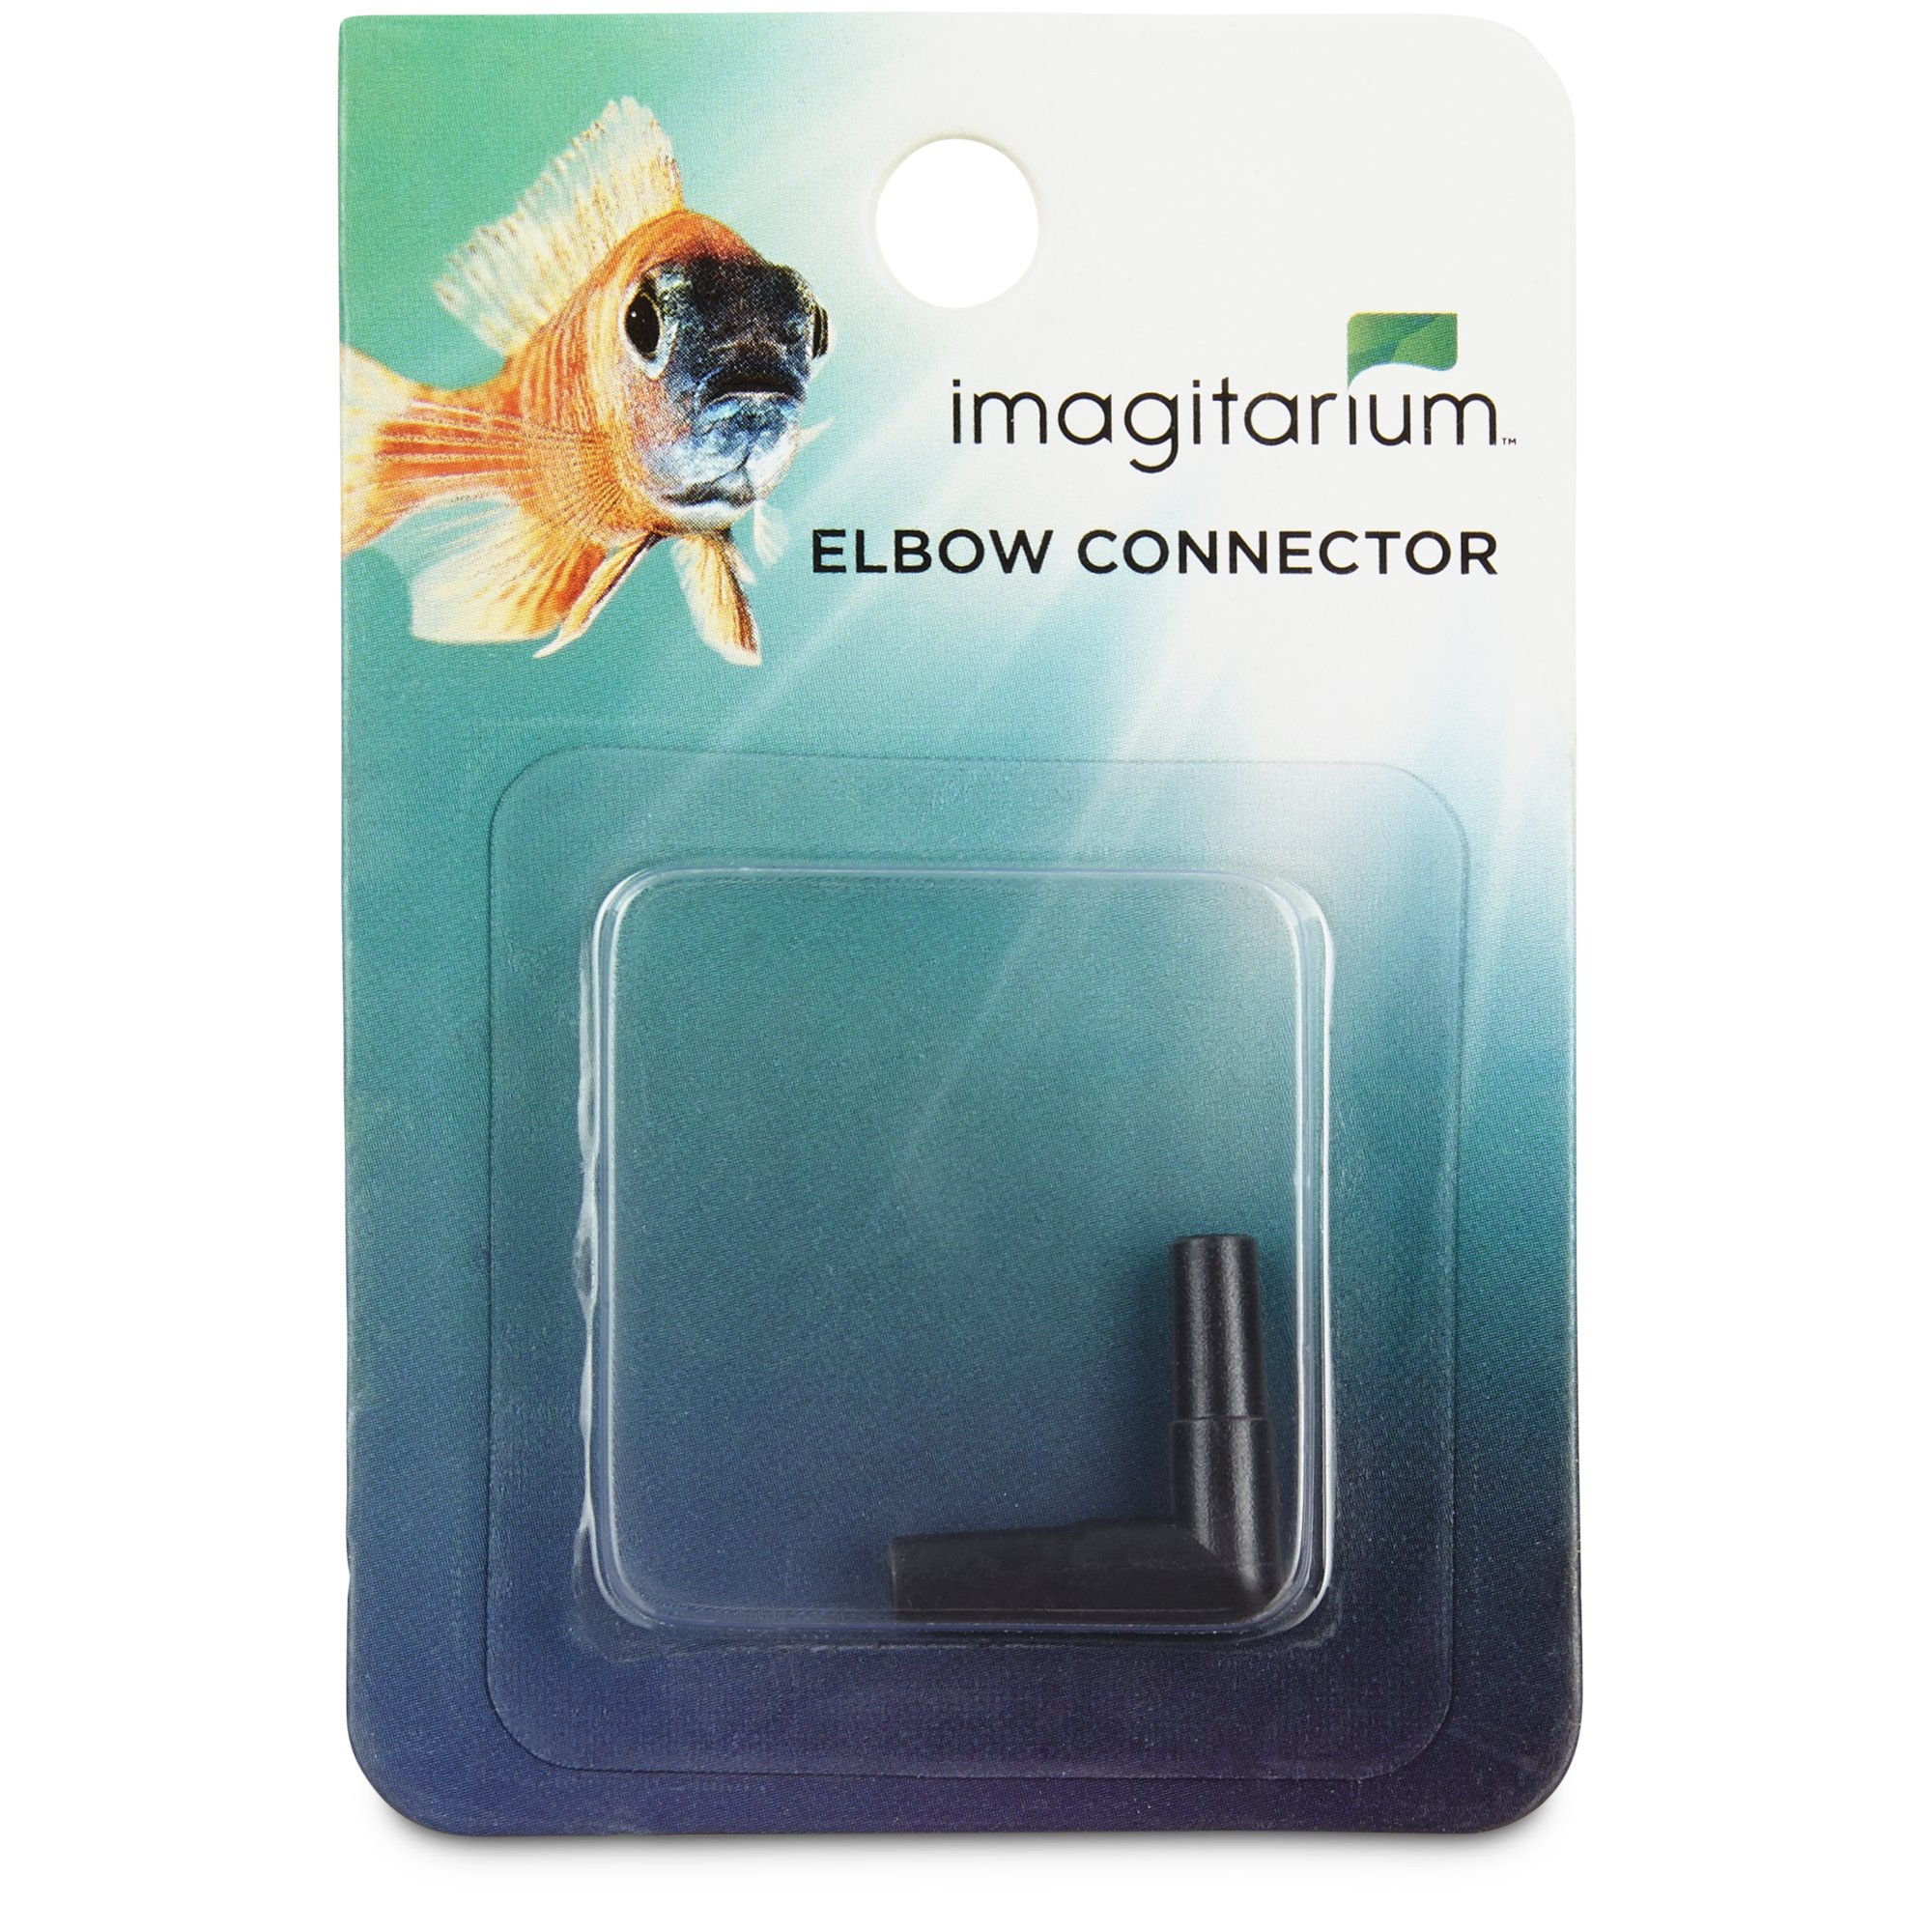 Freshwater fish tank upkeep - Imagitarium Elbow Connector For Airline Tubing